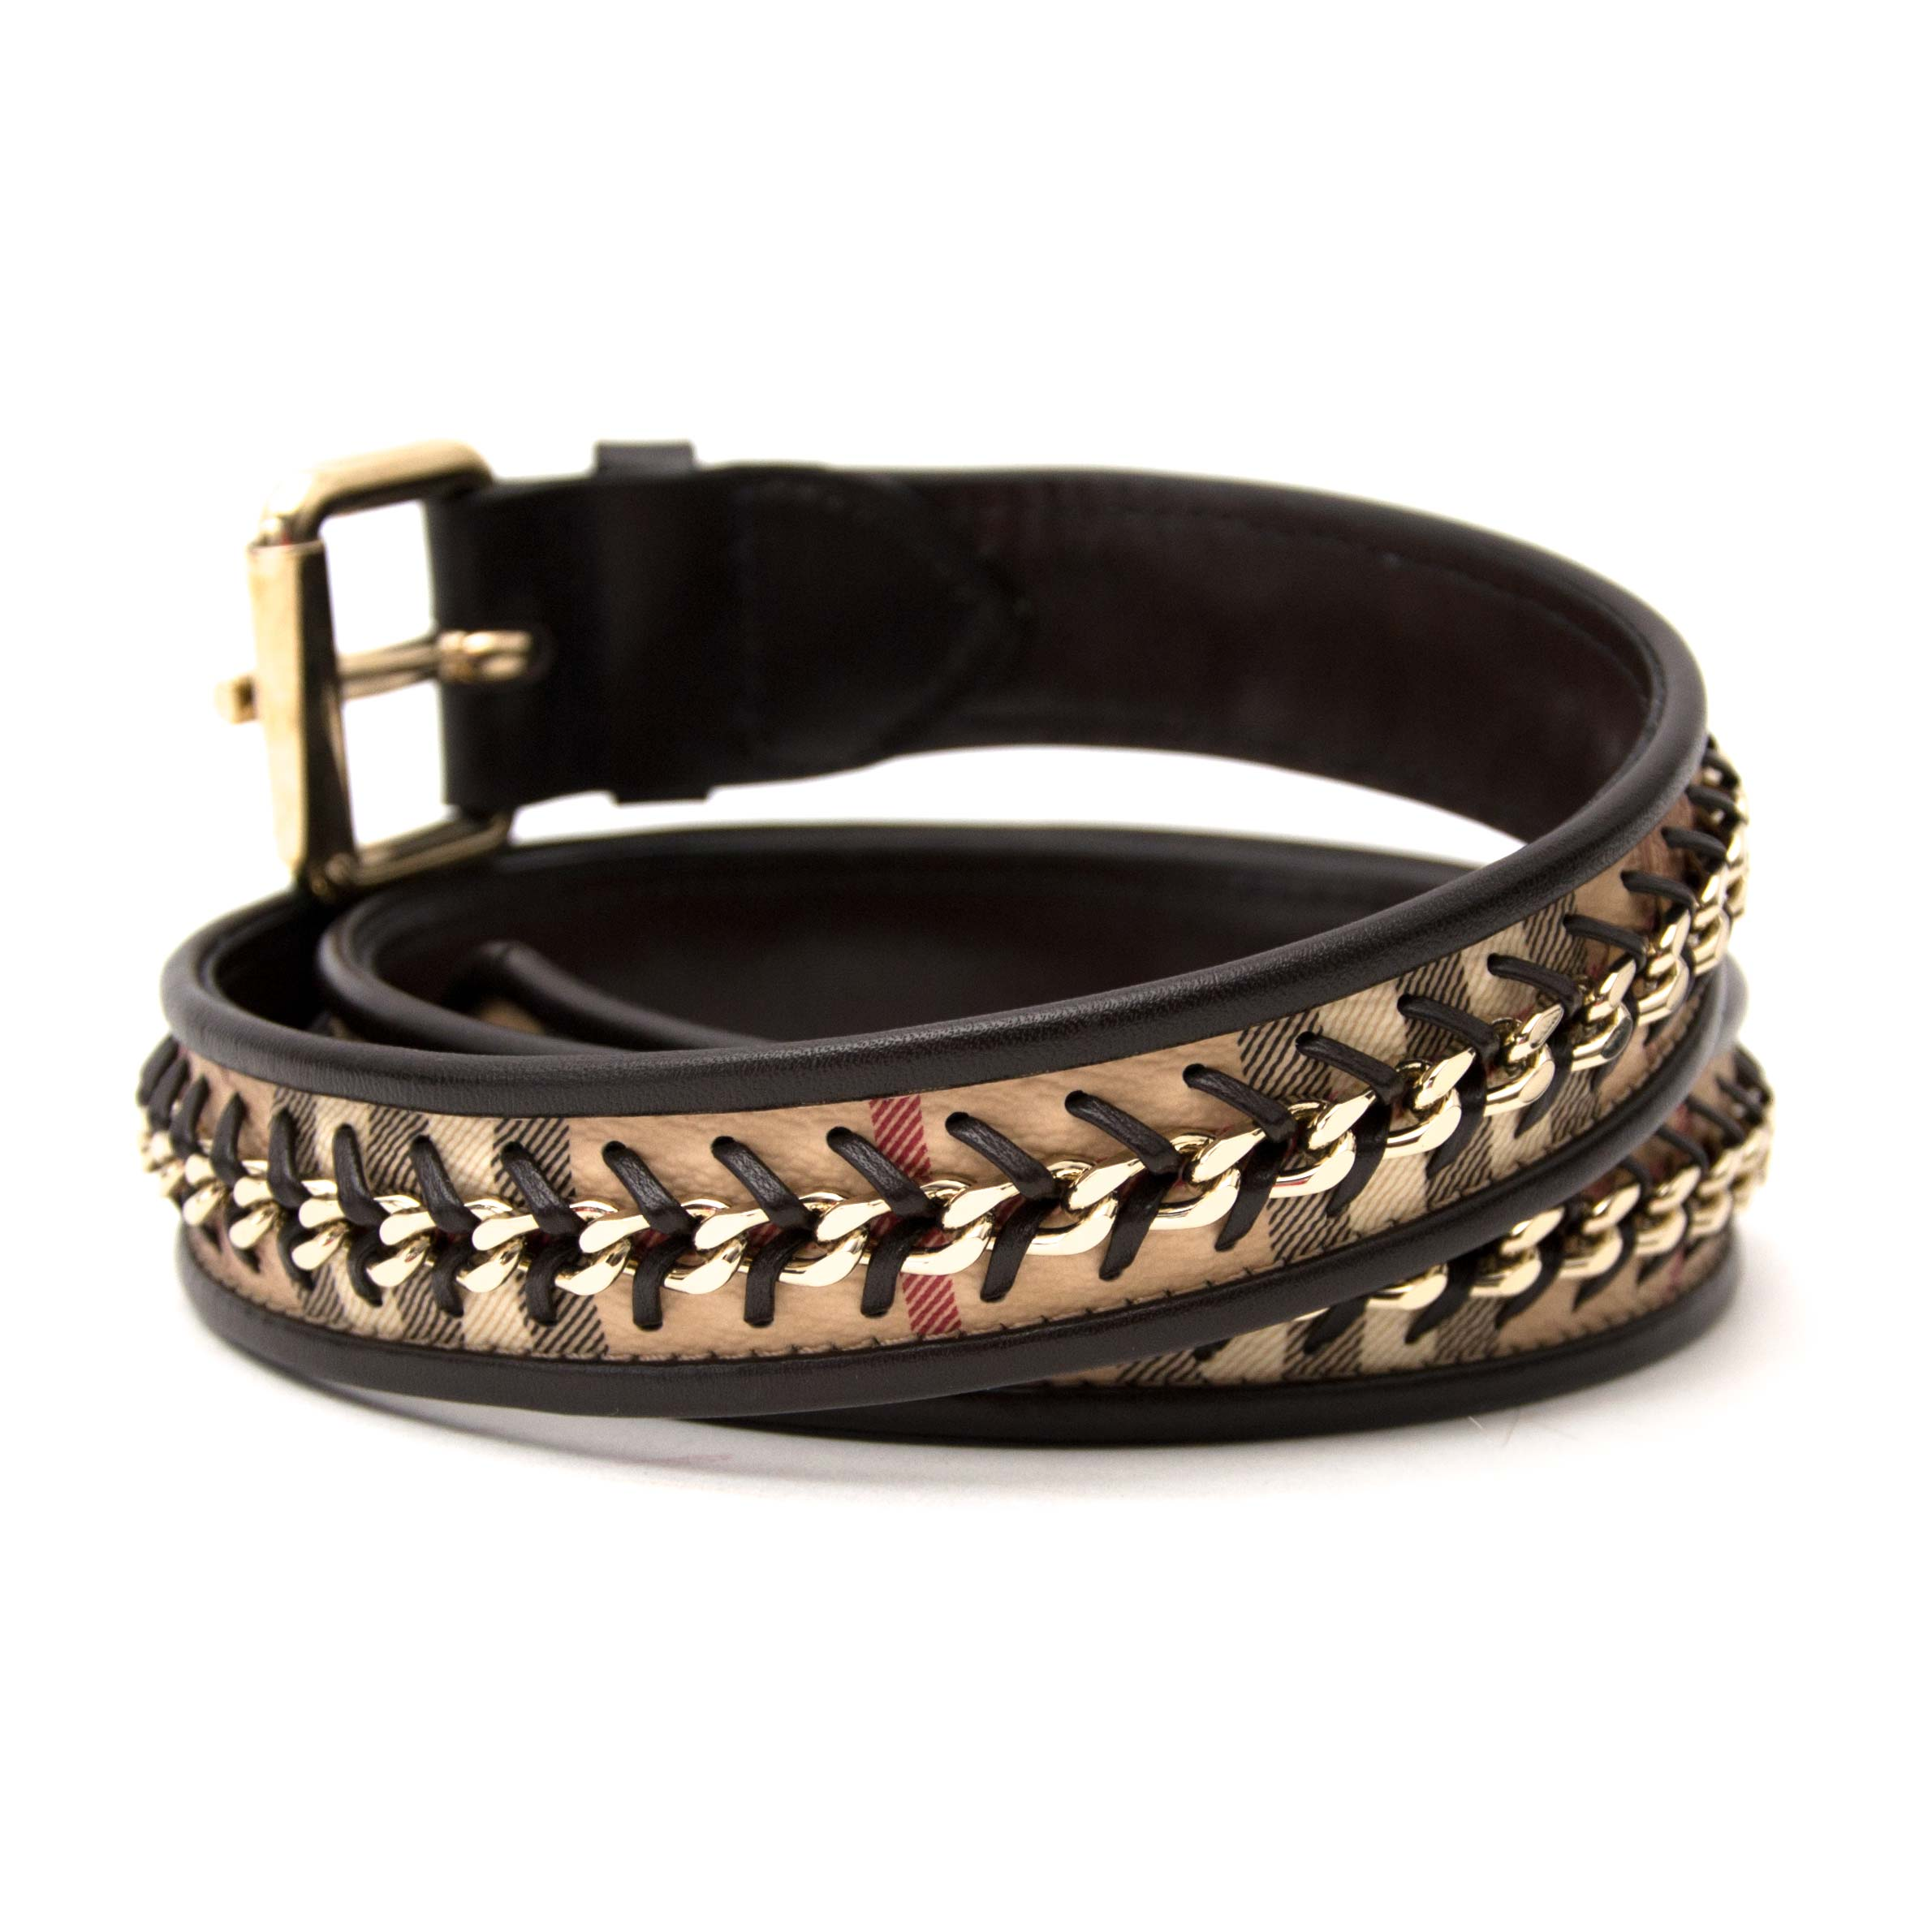 Koop en verkoop uw authentieke Burberry Check Black Leather Belt